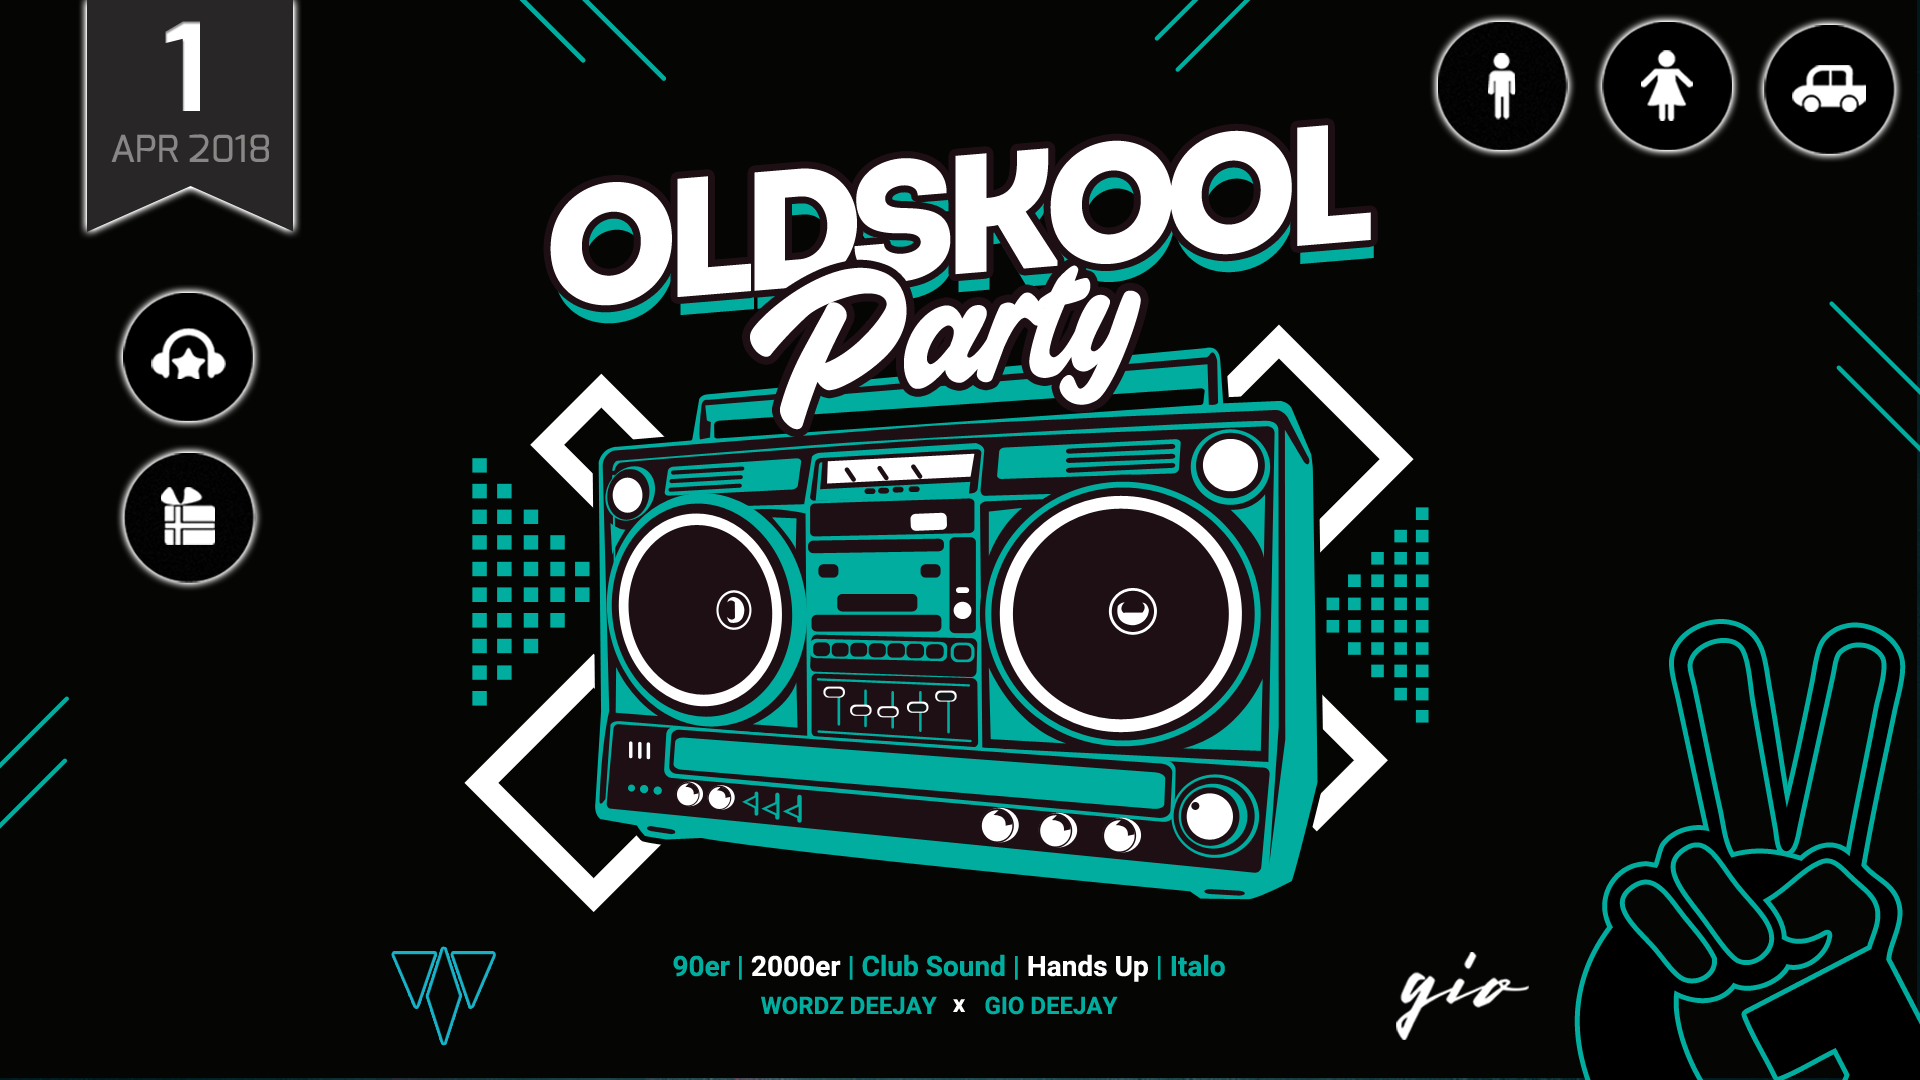 OLDSKOOL PARTY | 90er, 2000er, Club Sound, Hands Up & Italo